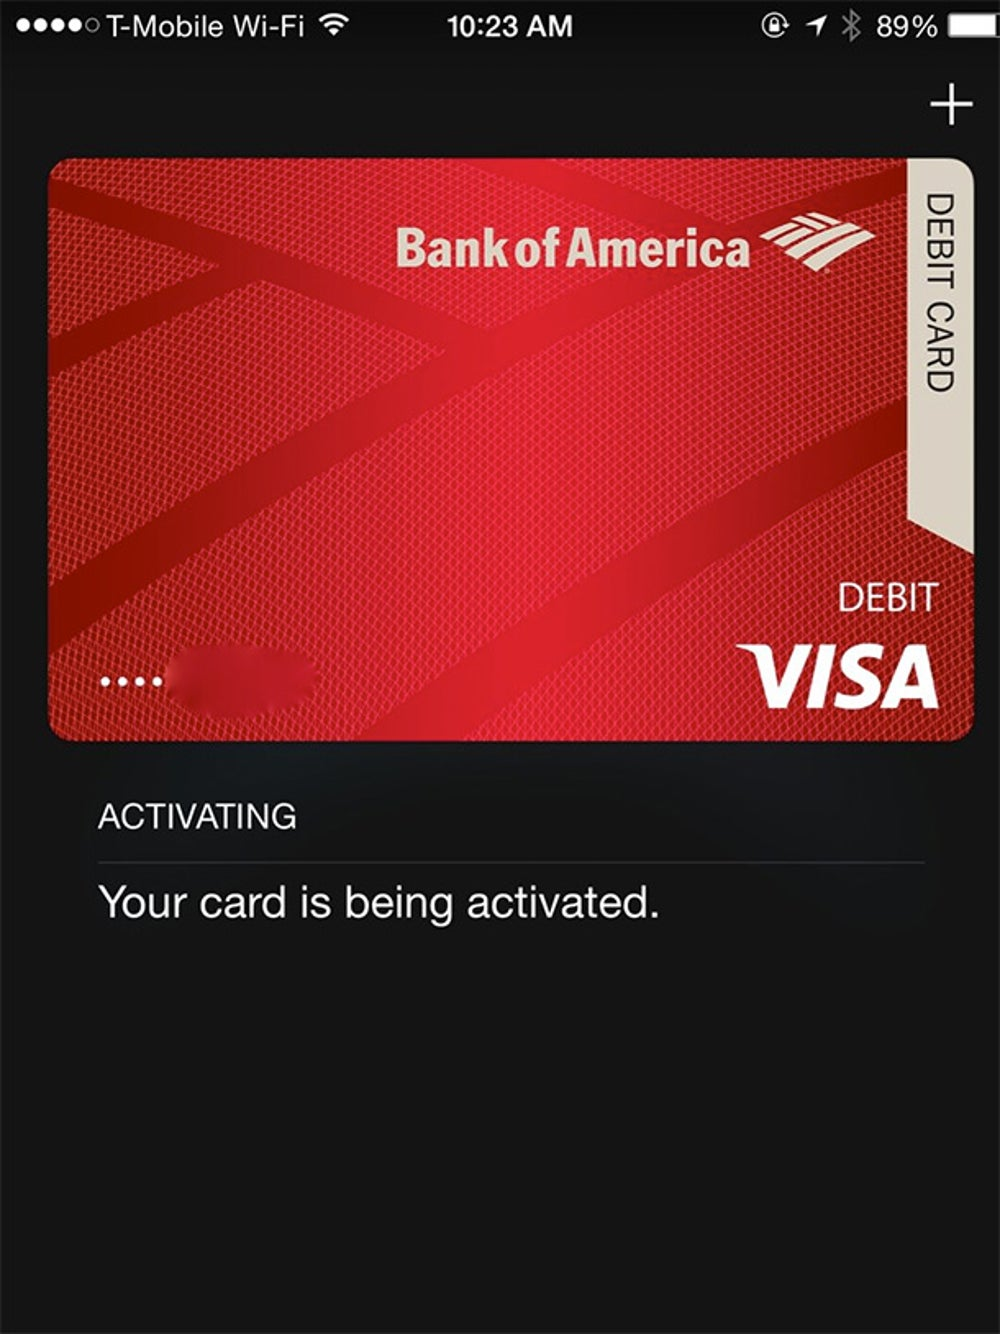 It takes about a minute for your card to activate. Once it does, you're ready to buy stuff.